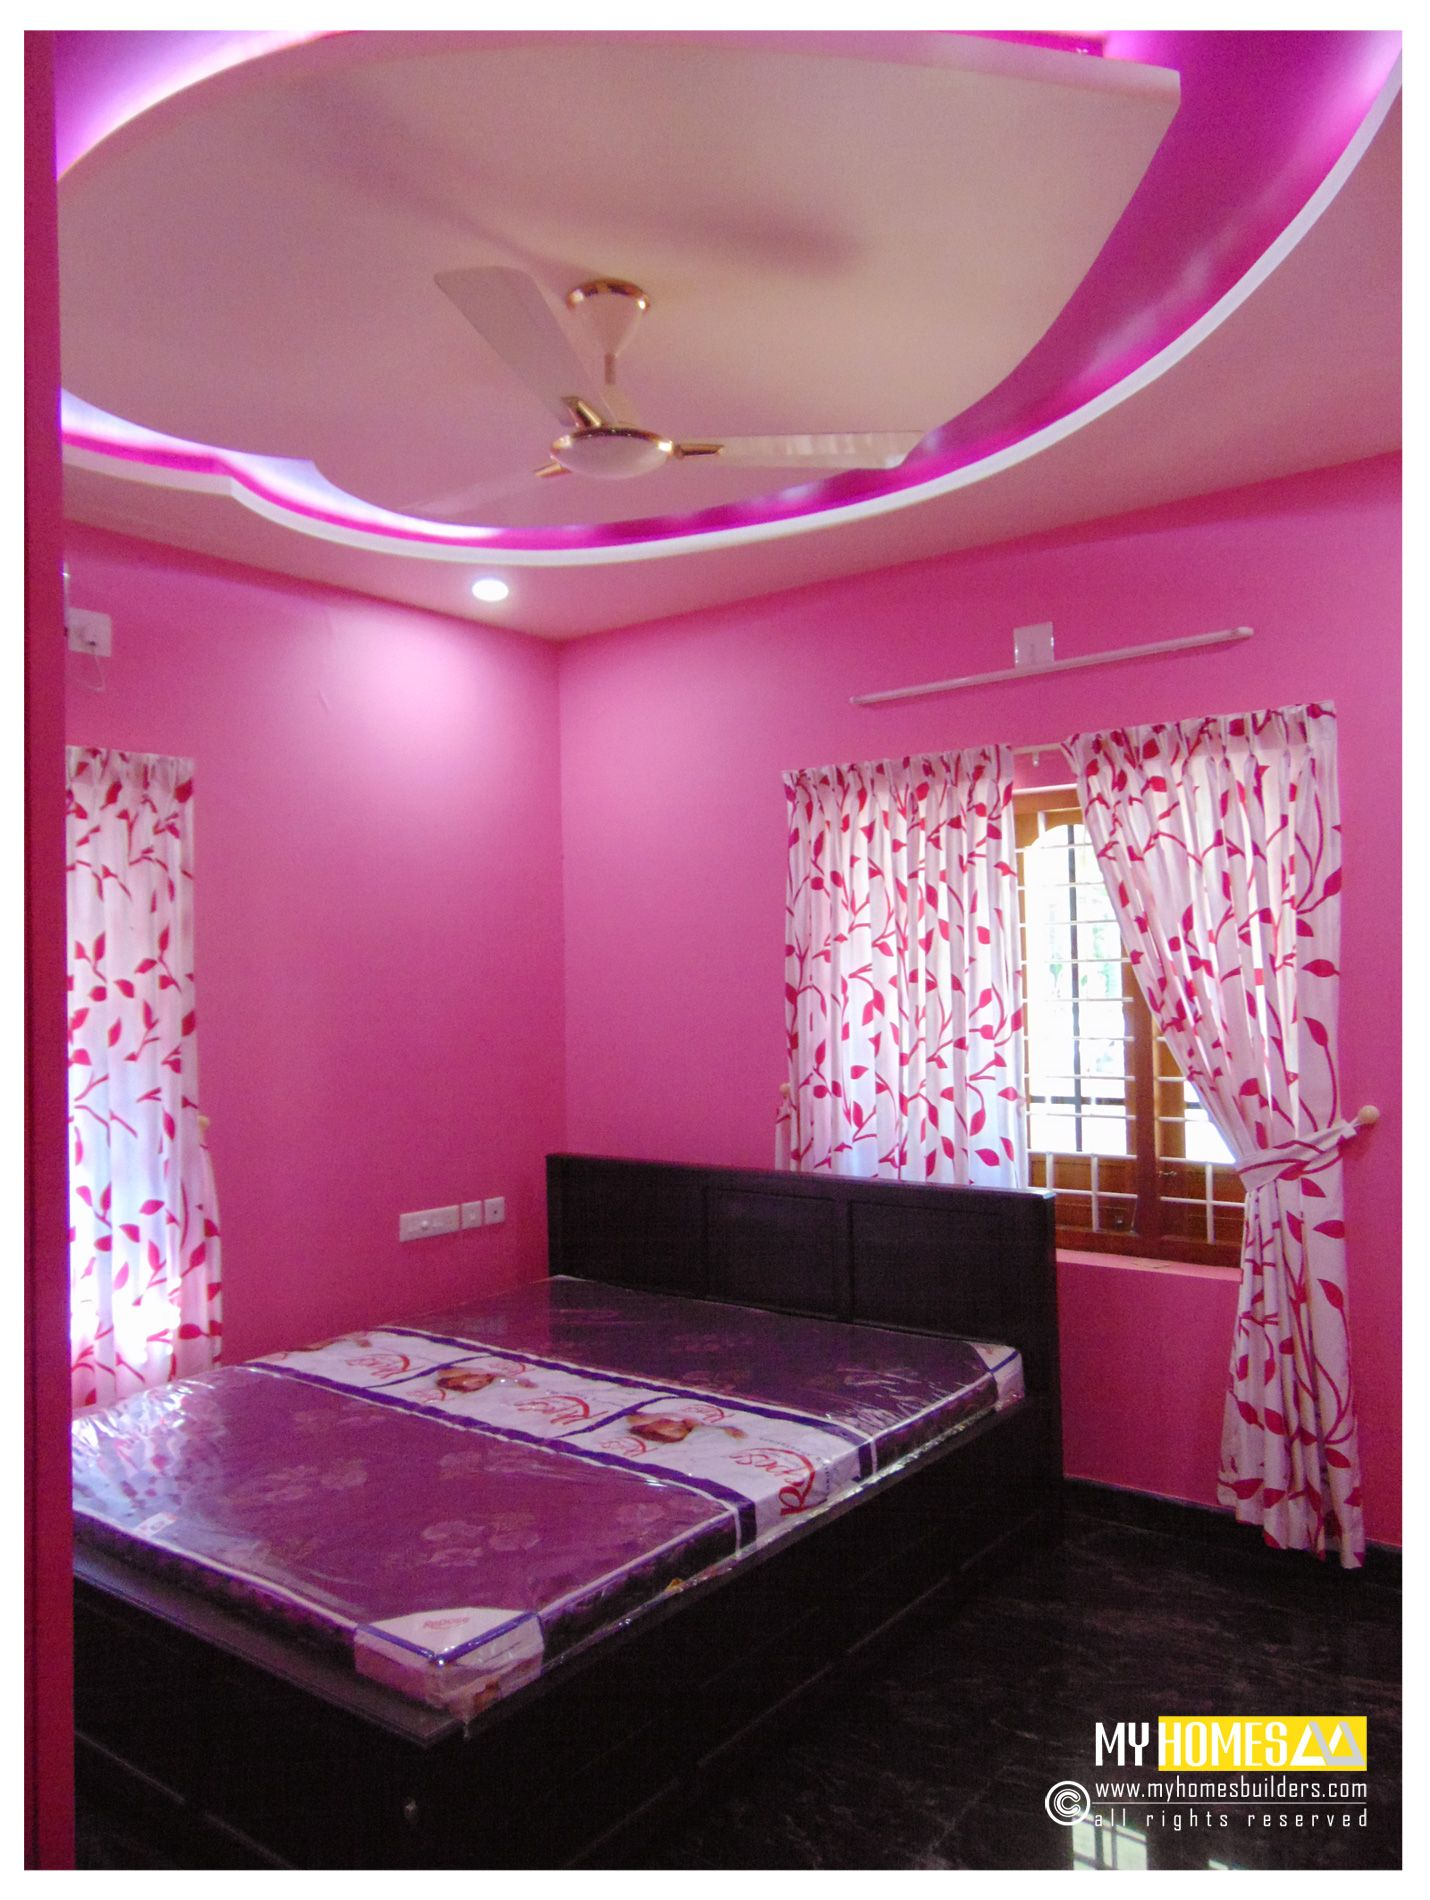 Kerala bedroom interior designs best bed room interior designs for one of our client from - Interior decoration for bedroom ...